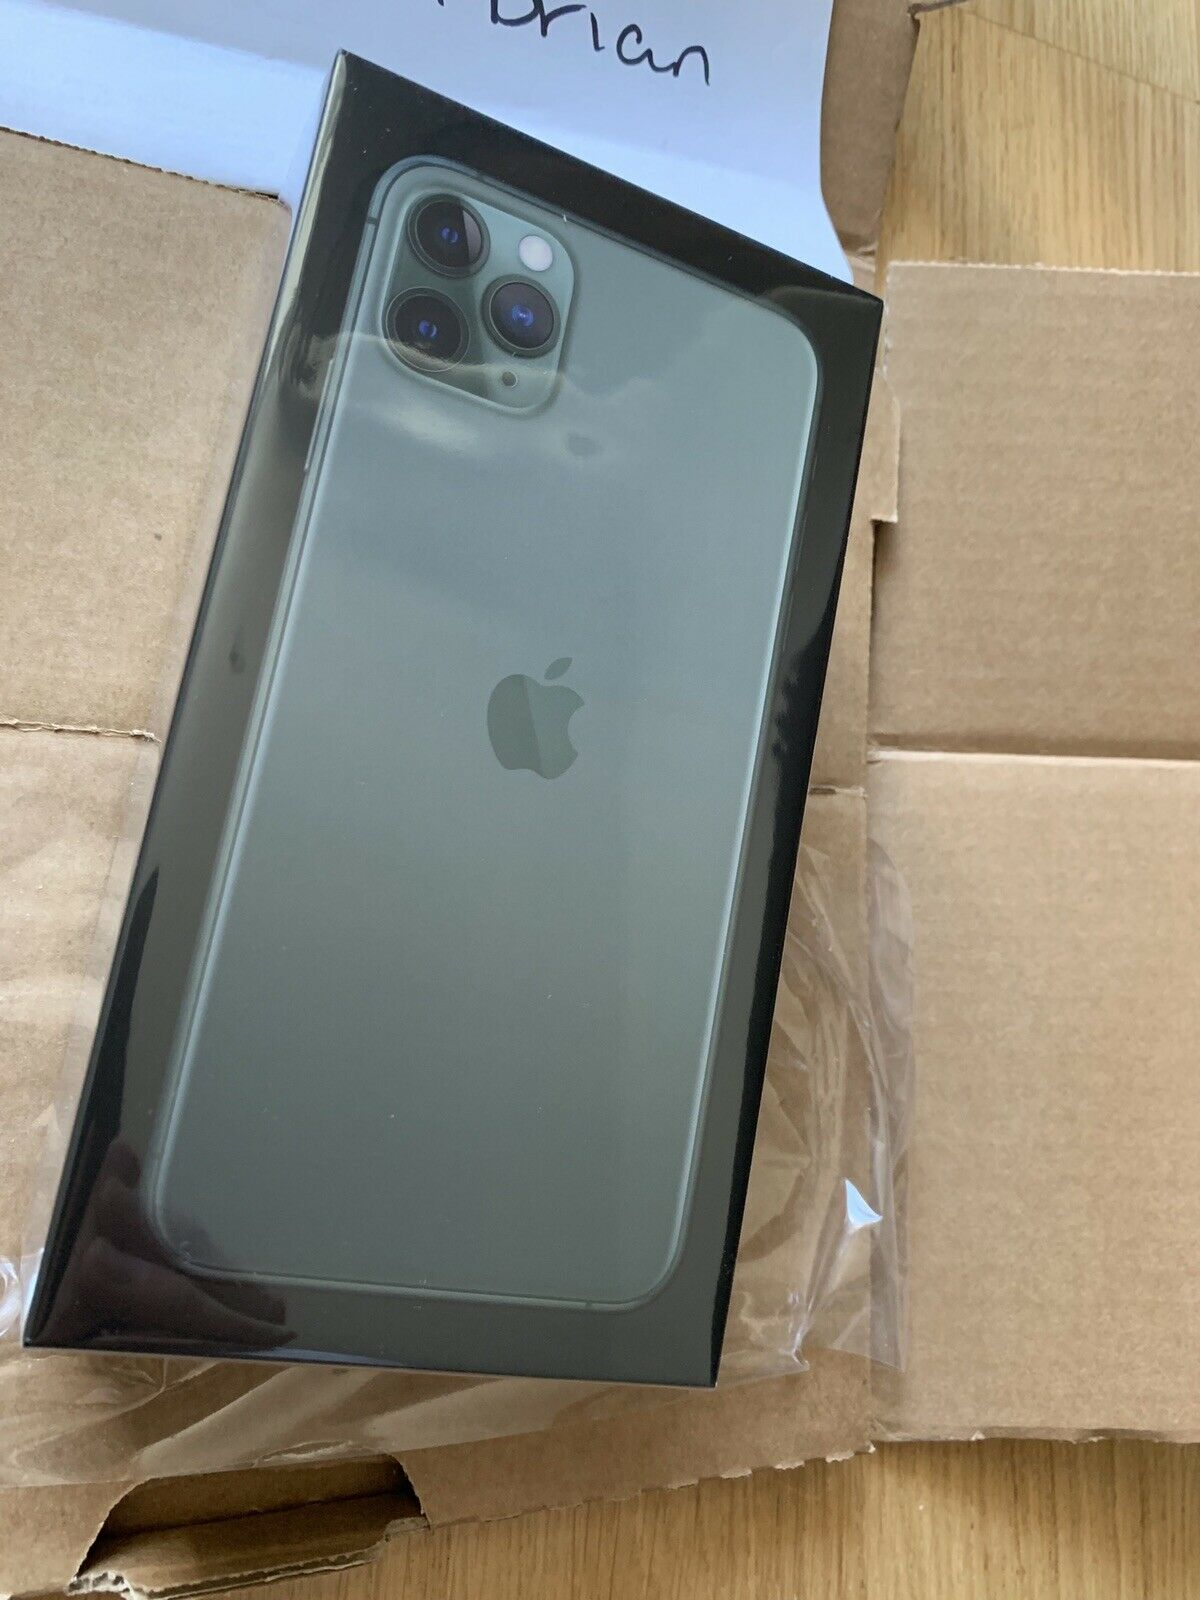 Apple iPhone 11 Pro Max 256GB Unlocked == $800